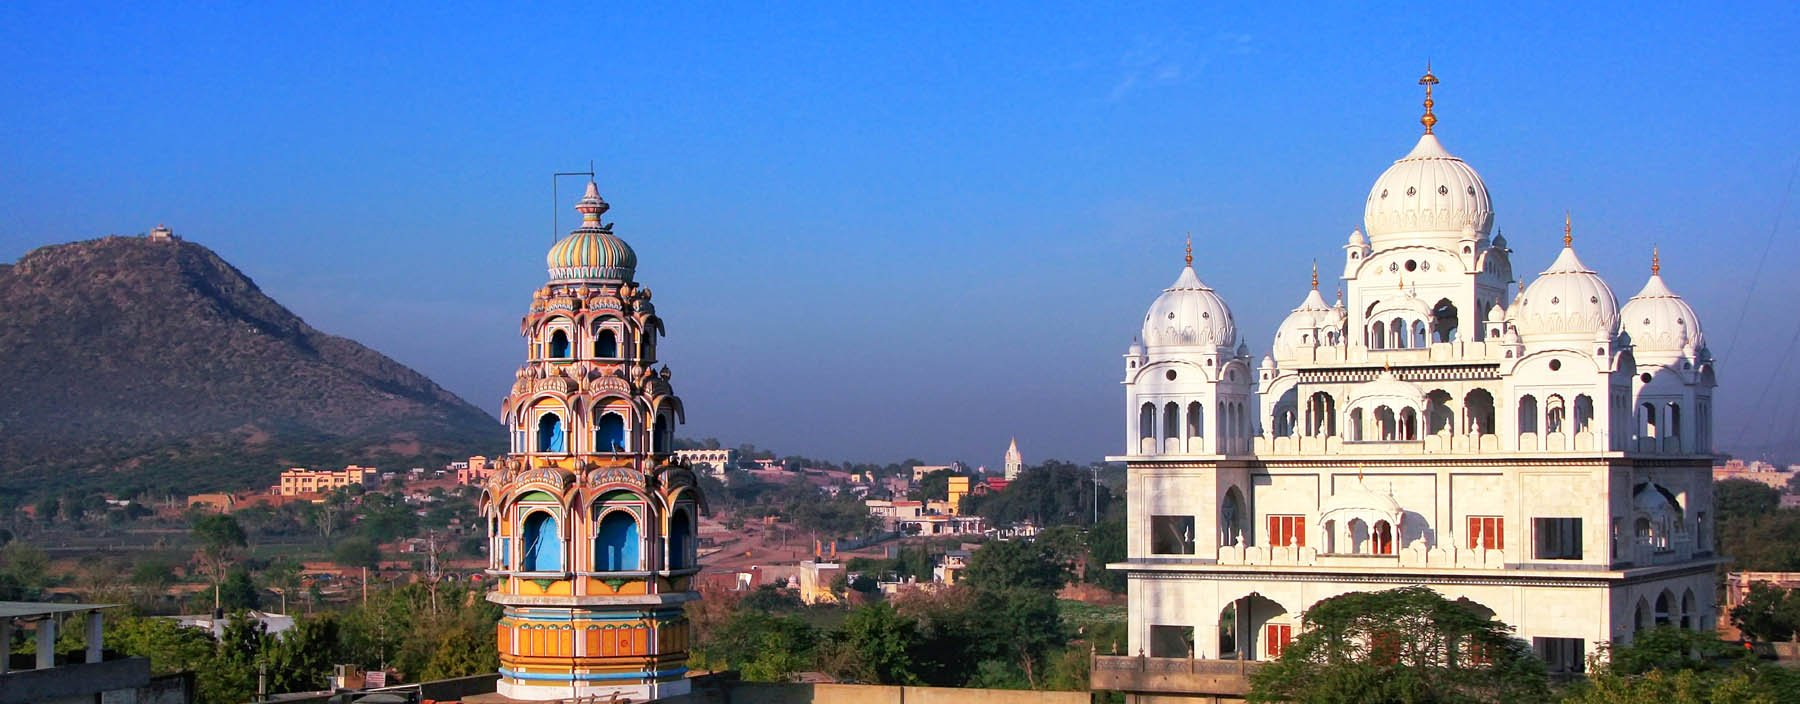 india, pushkar, gurudwara temple.jpg